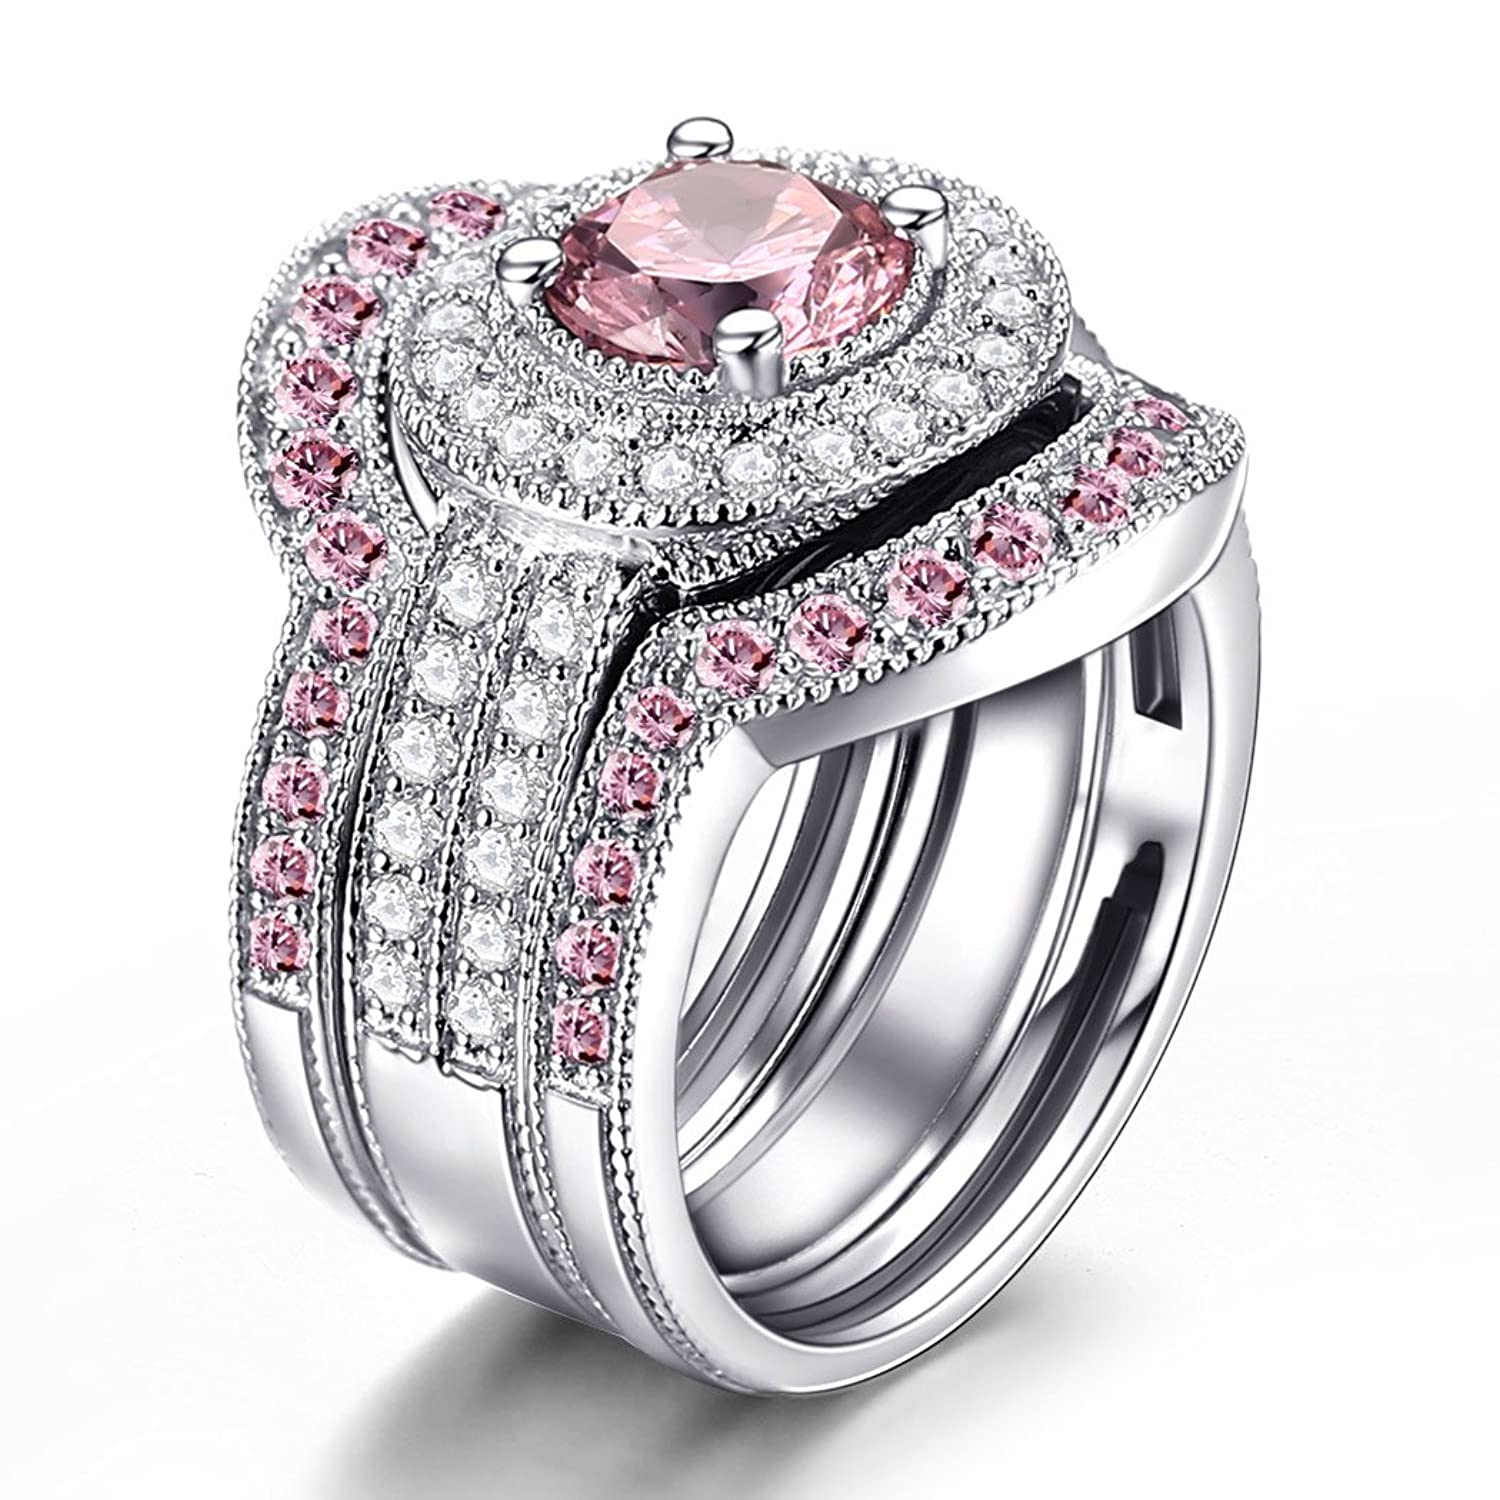 amazoncom caperci 3 piece sterling silver round cz created pink sapphire bridal engagement wedding ring sets jewelry - 3 Piece Wedding Ring Sets